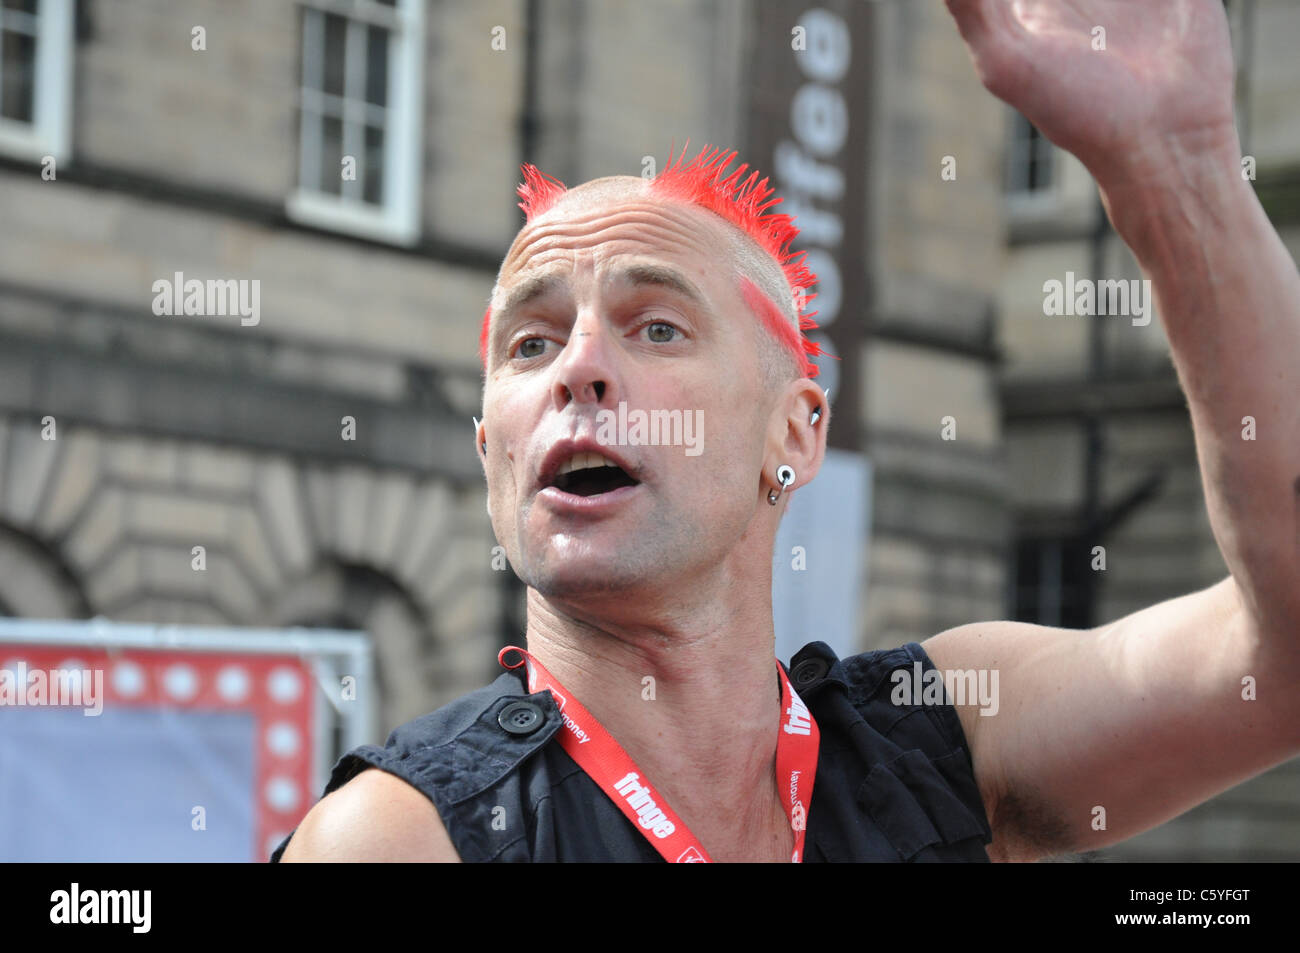 The Mighty Gareth, Street Performer at Edinburgh Fringe 2011 - Stock Image